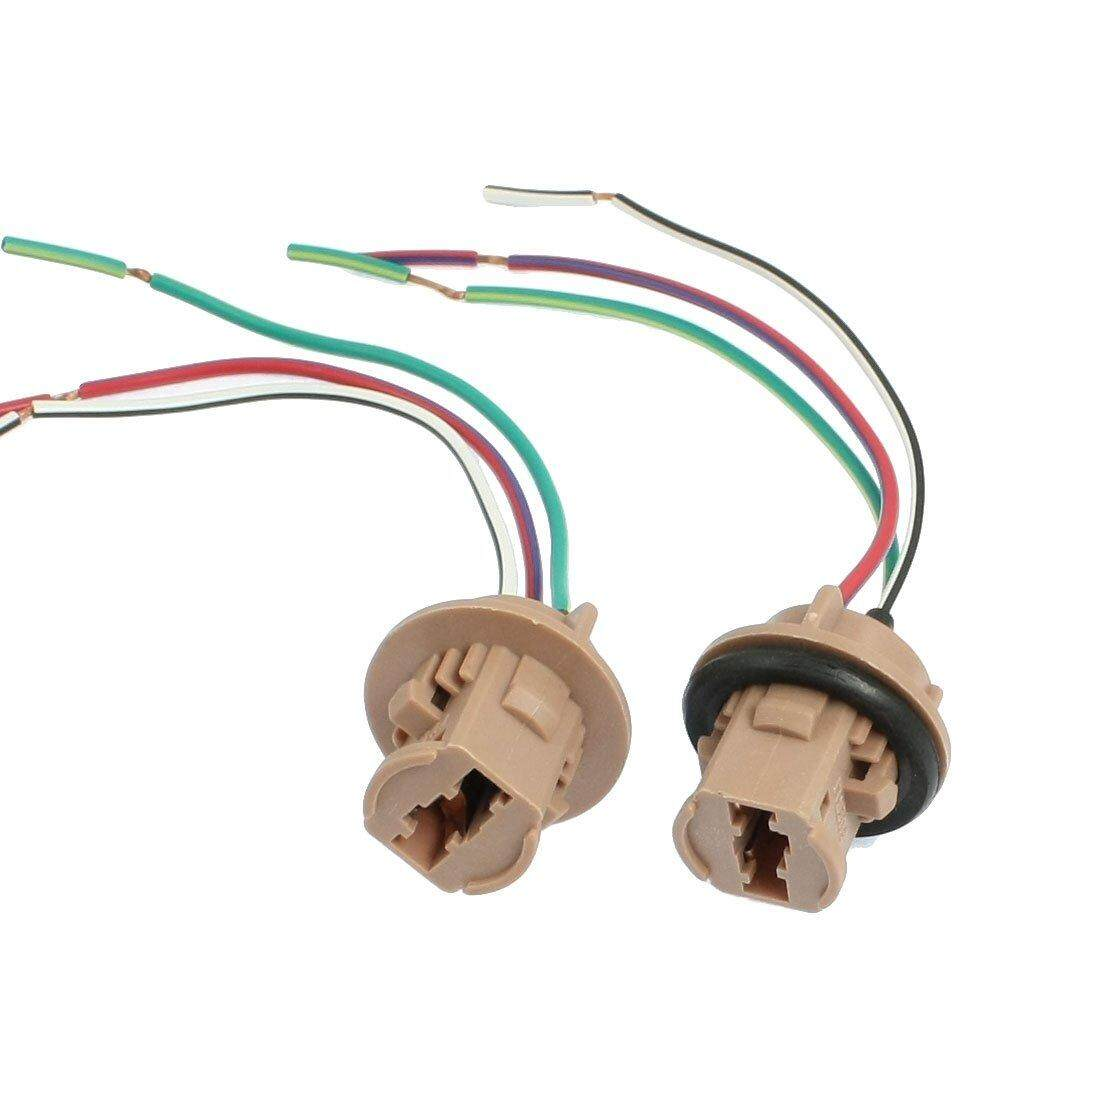 Features 2 Pcs T20 7443 Led Bulb Brake Turn Signal Light Sockets Wiring Harness Plug Wire Plugs